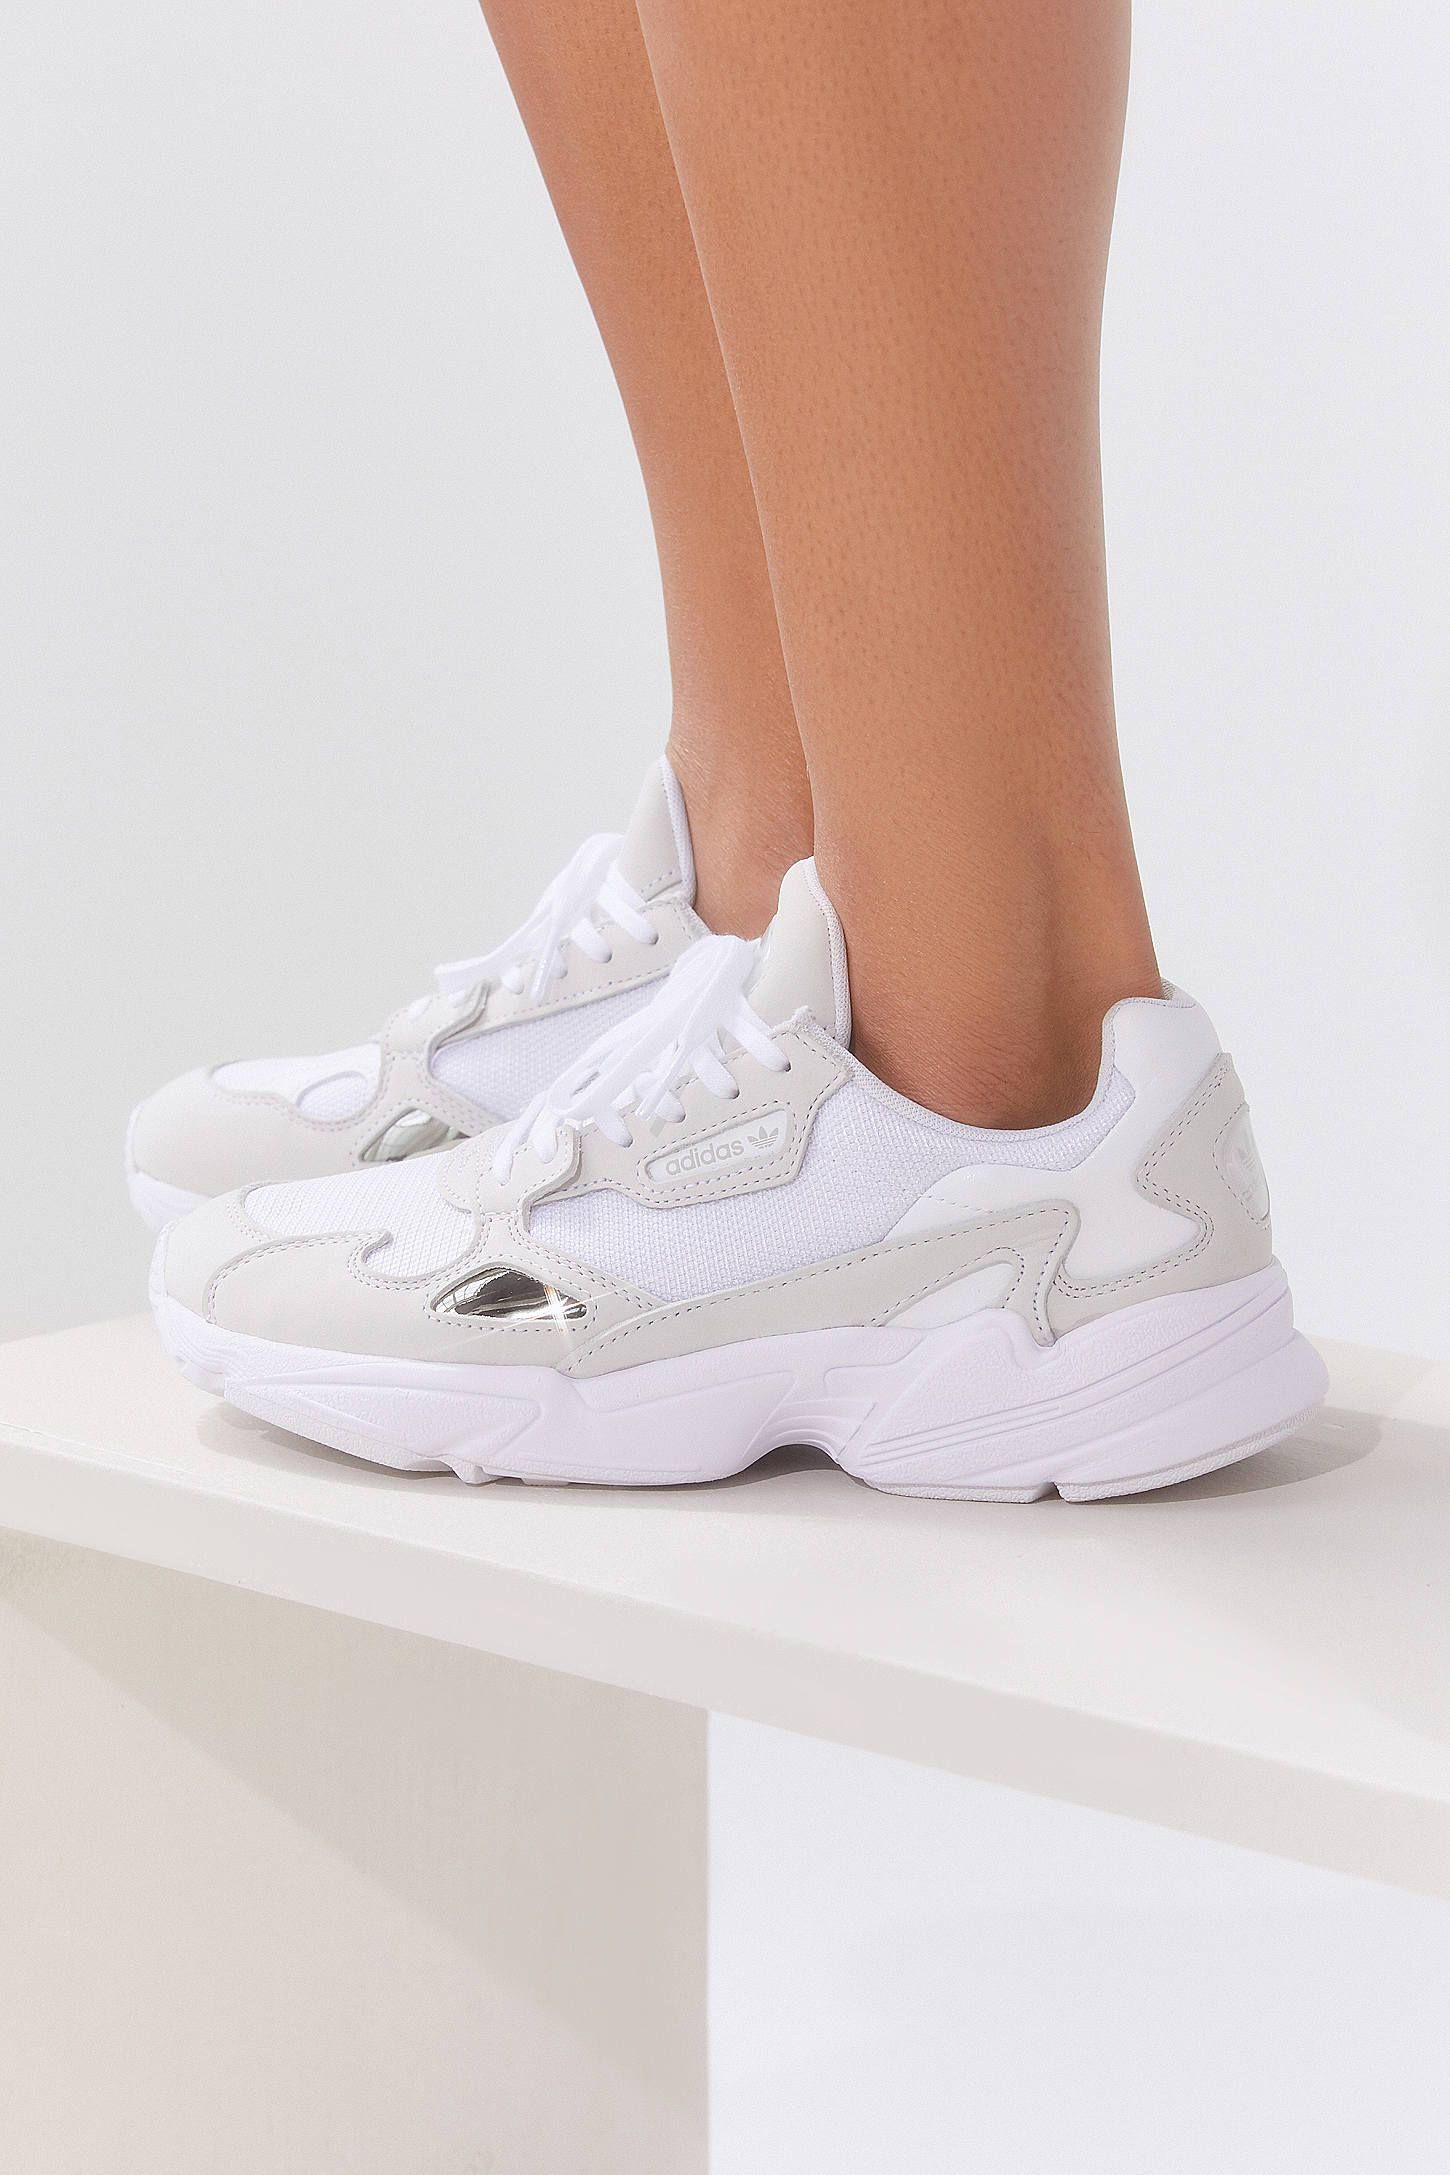 7edc18fc693 adidas Originals Falcon Sneaker in 2019